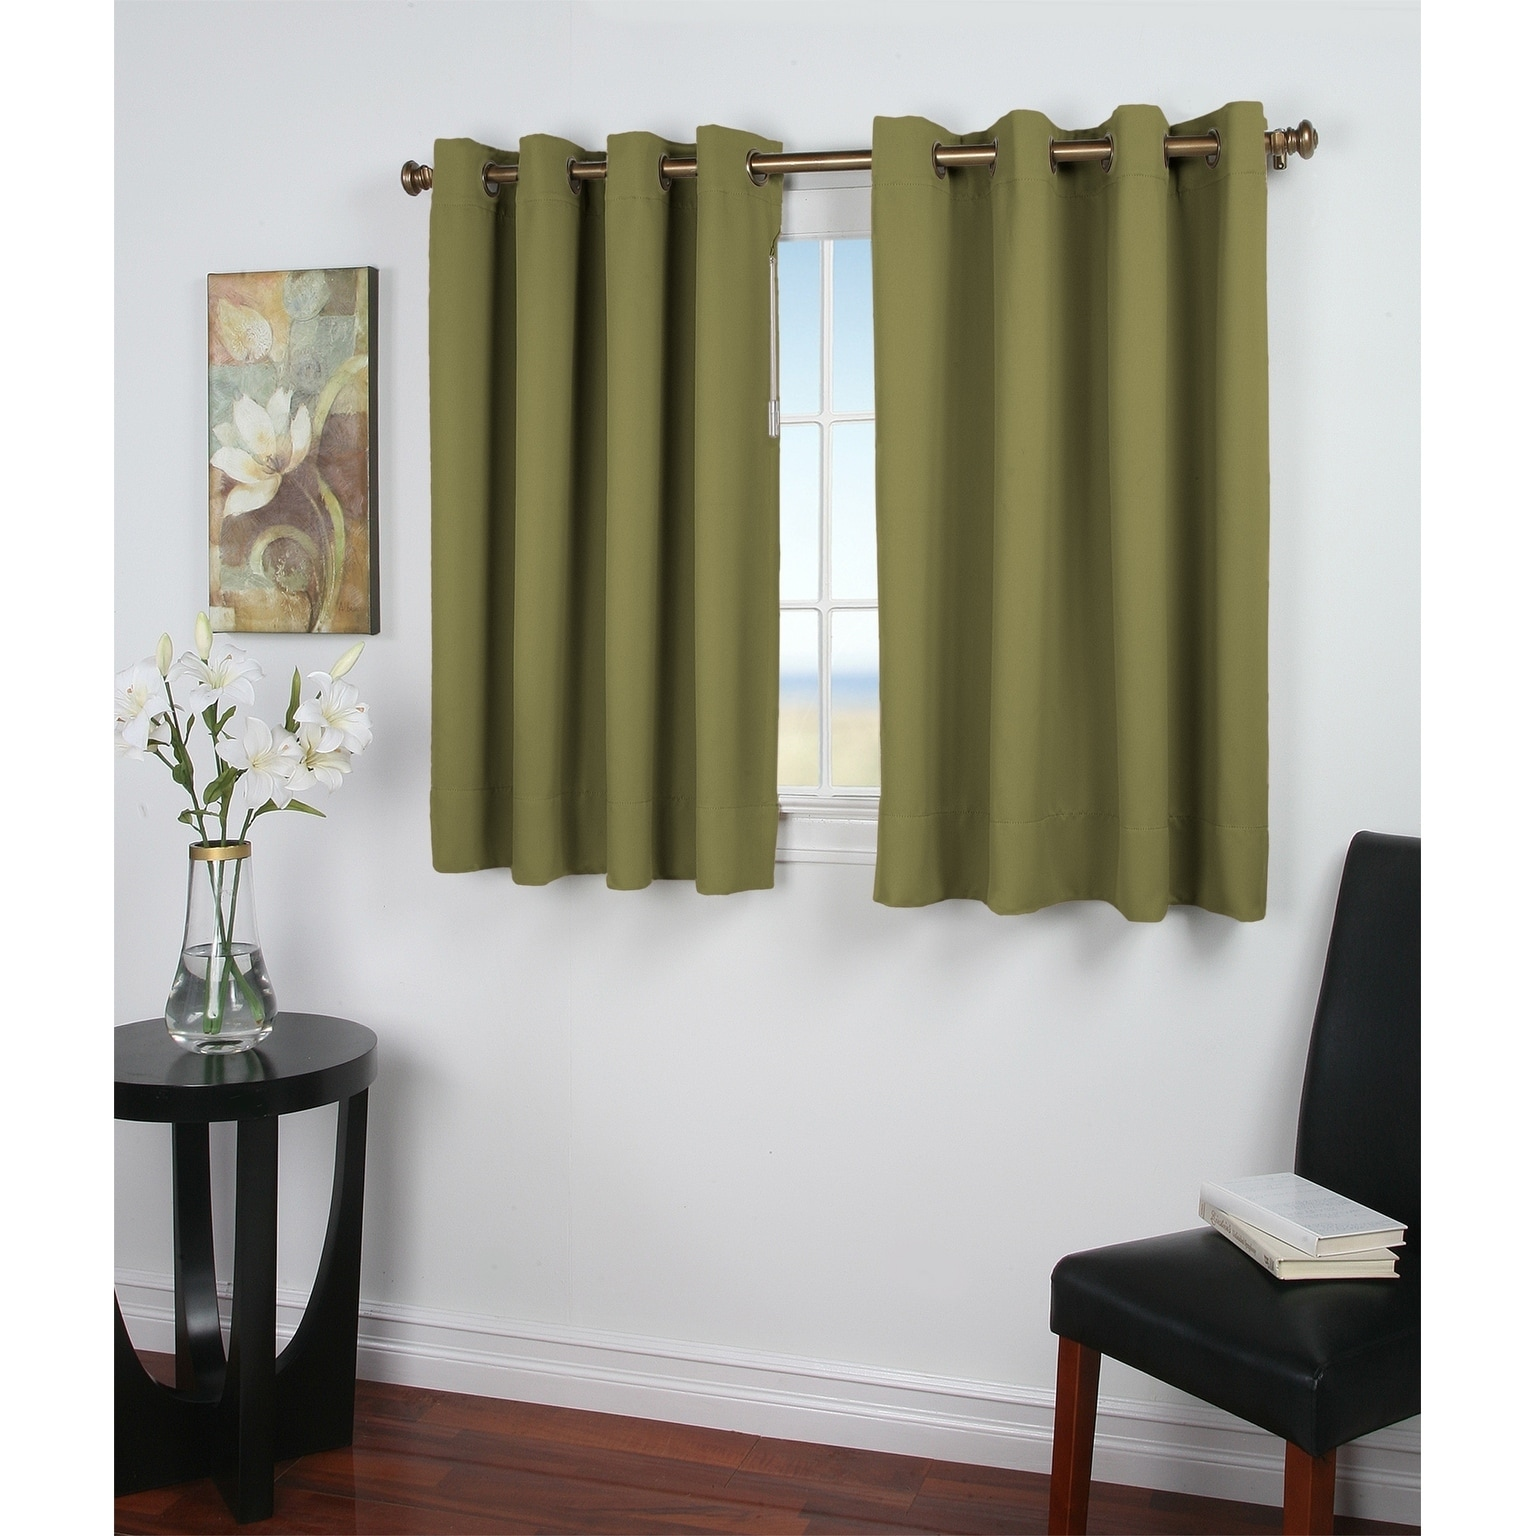 36 Inch Room Darkening Curtains Ultimate Blackout 36 Inch Short Length Grommet Panel 56